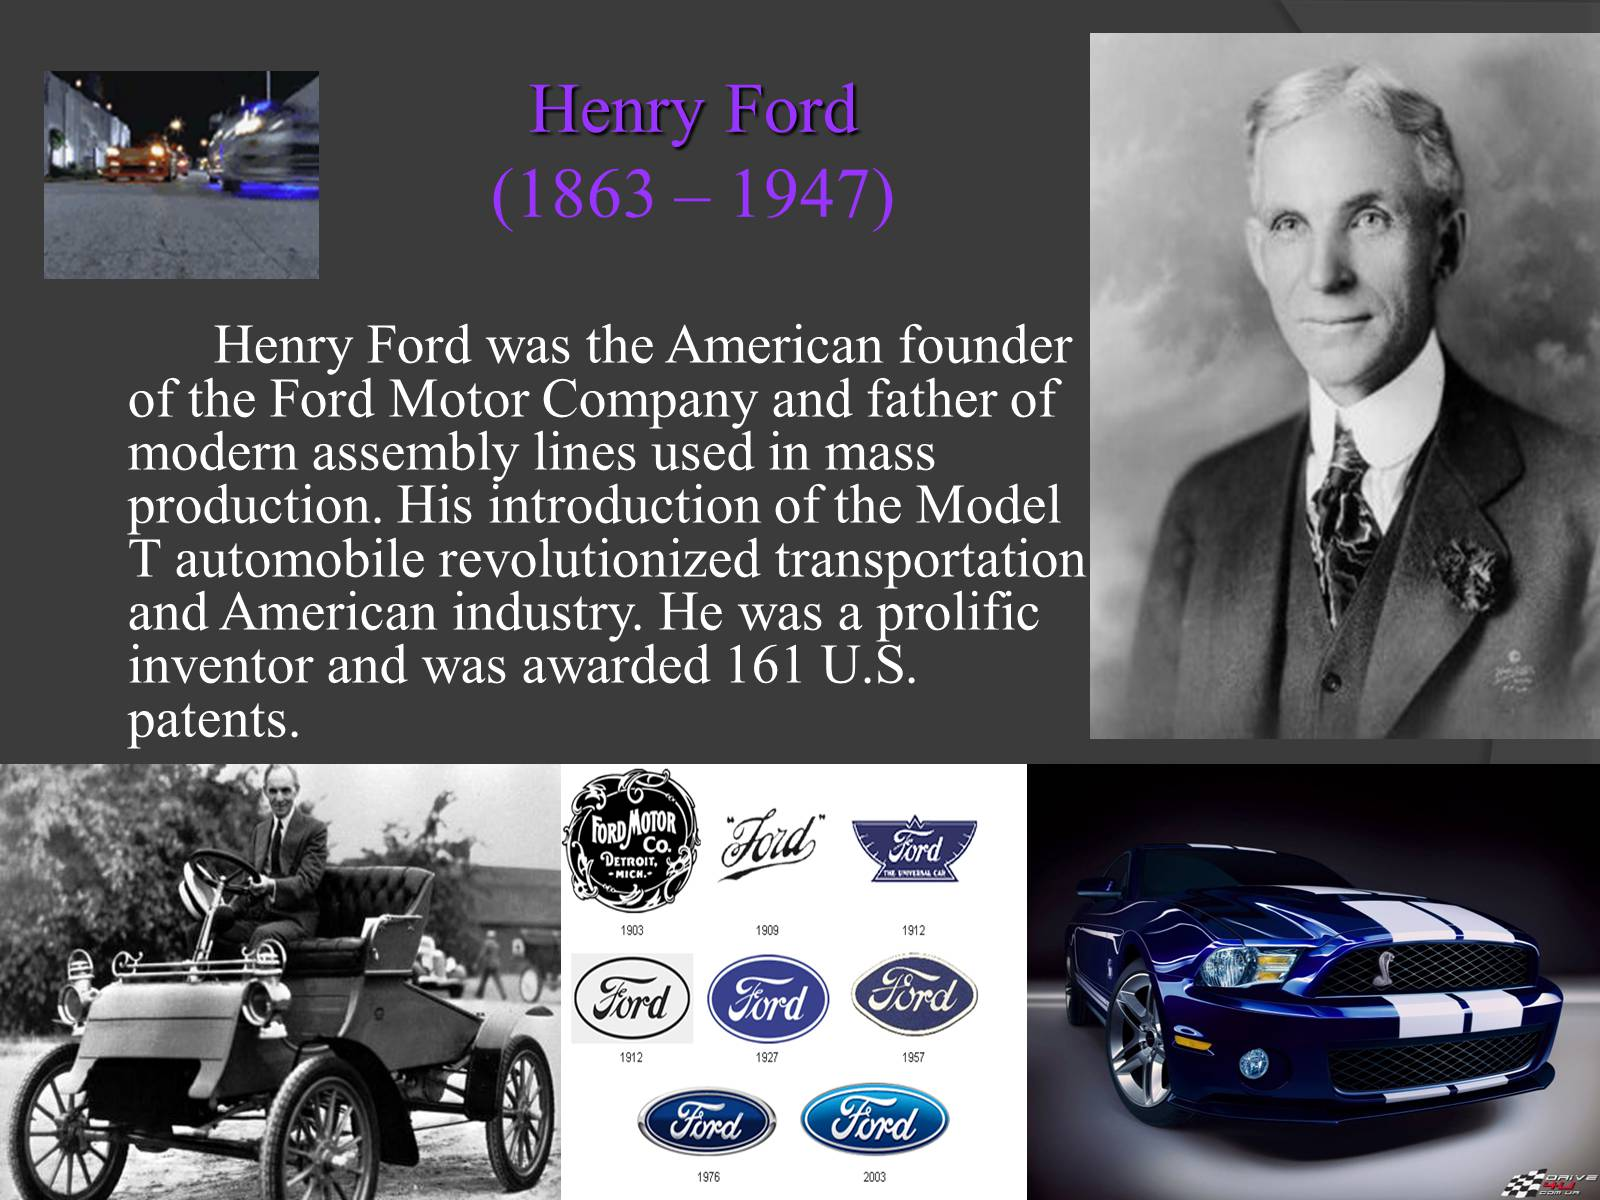 henry ford and the ford motor company On this day in 1919, edsel ford, the son of model t inventor and auto industry pioneer henry ford, succeeds his father as president of the ford motor company.